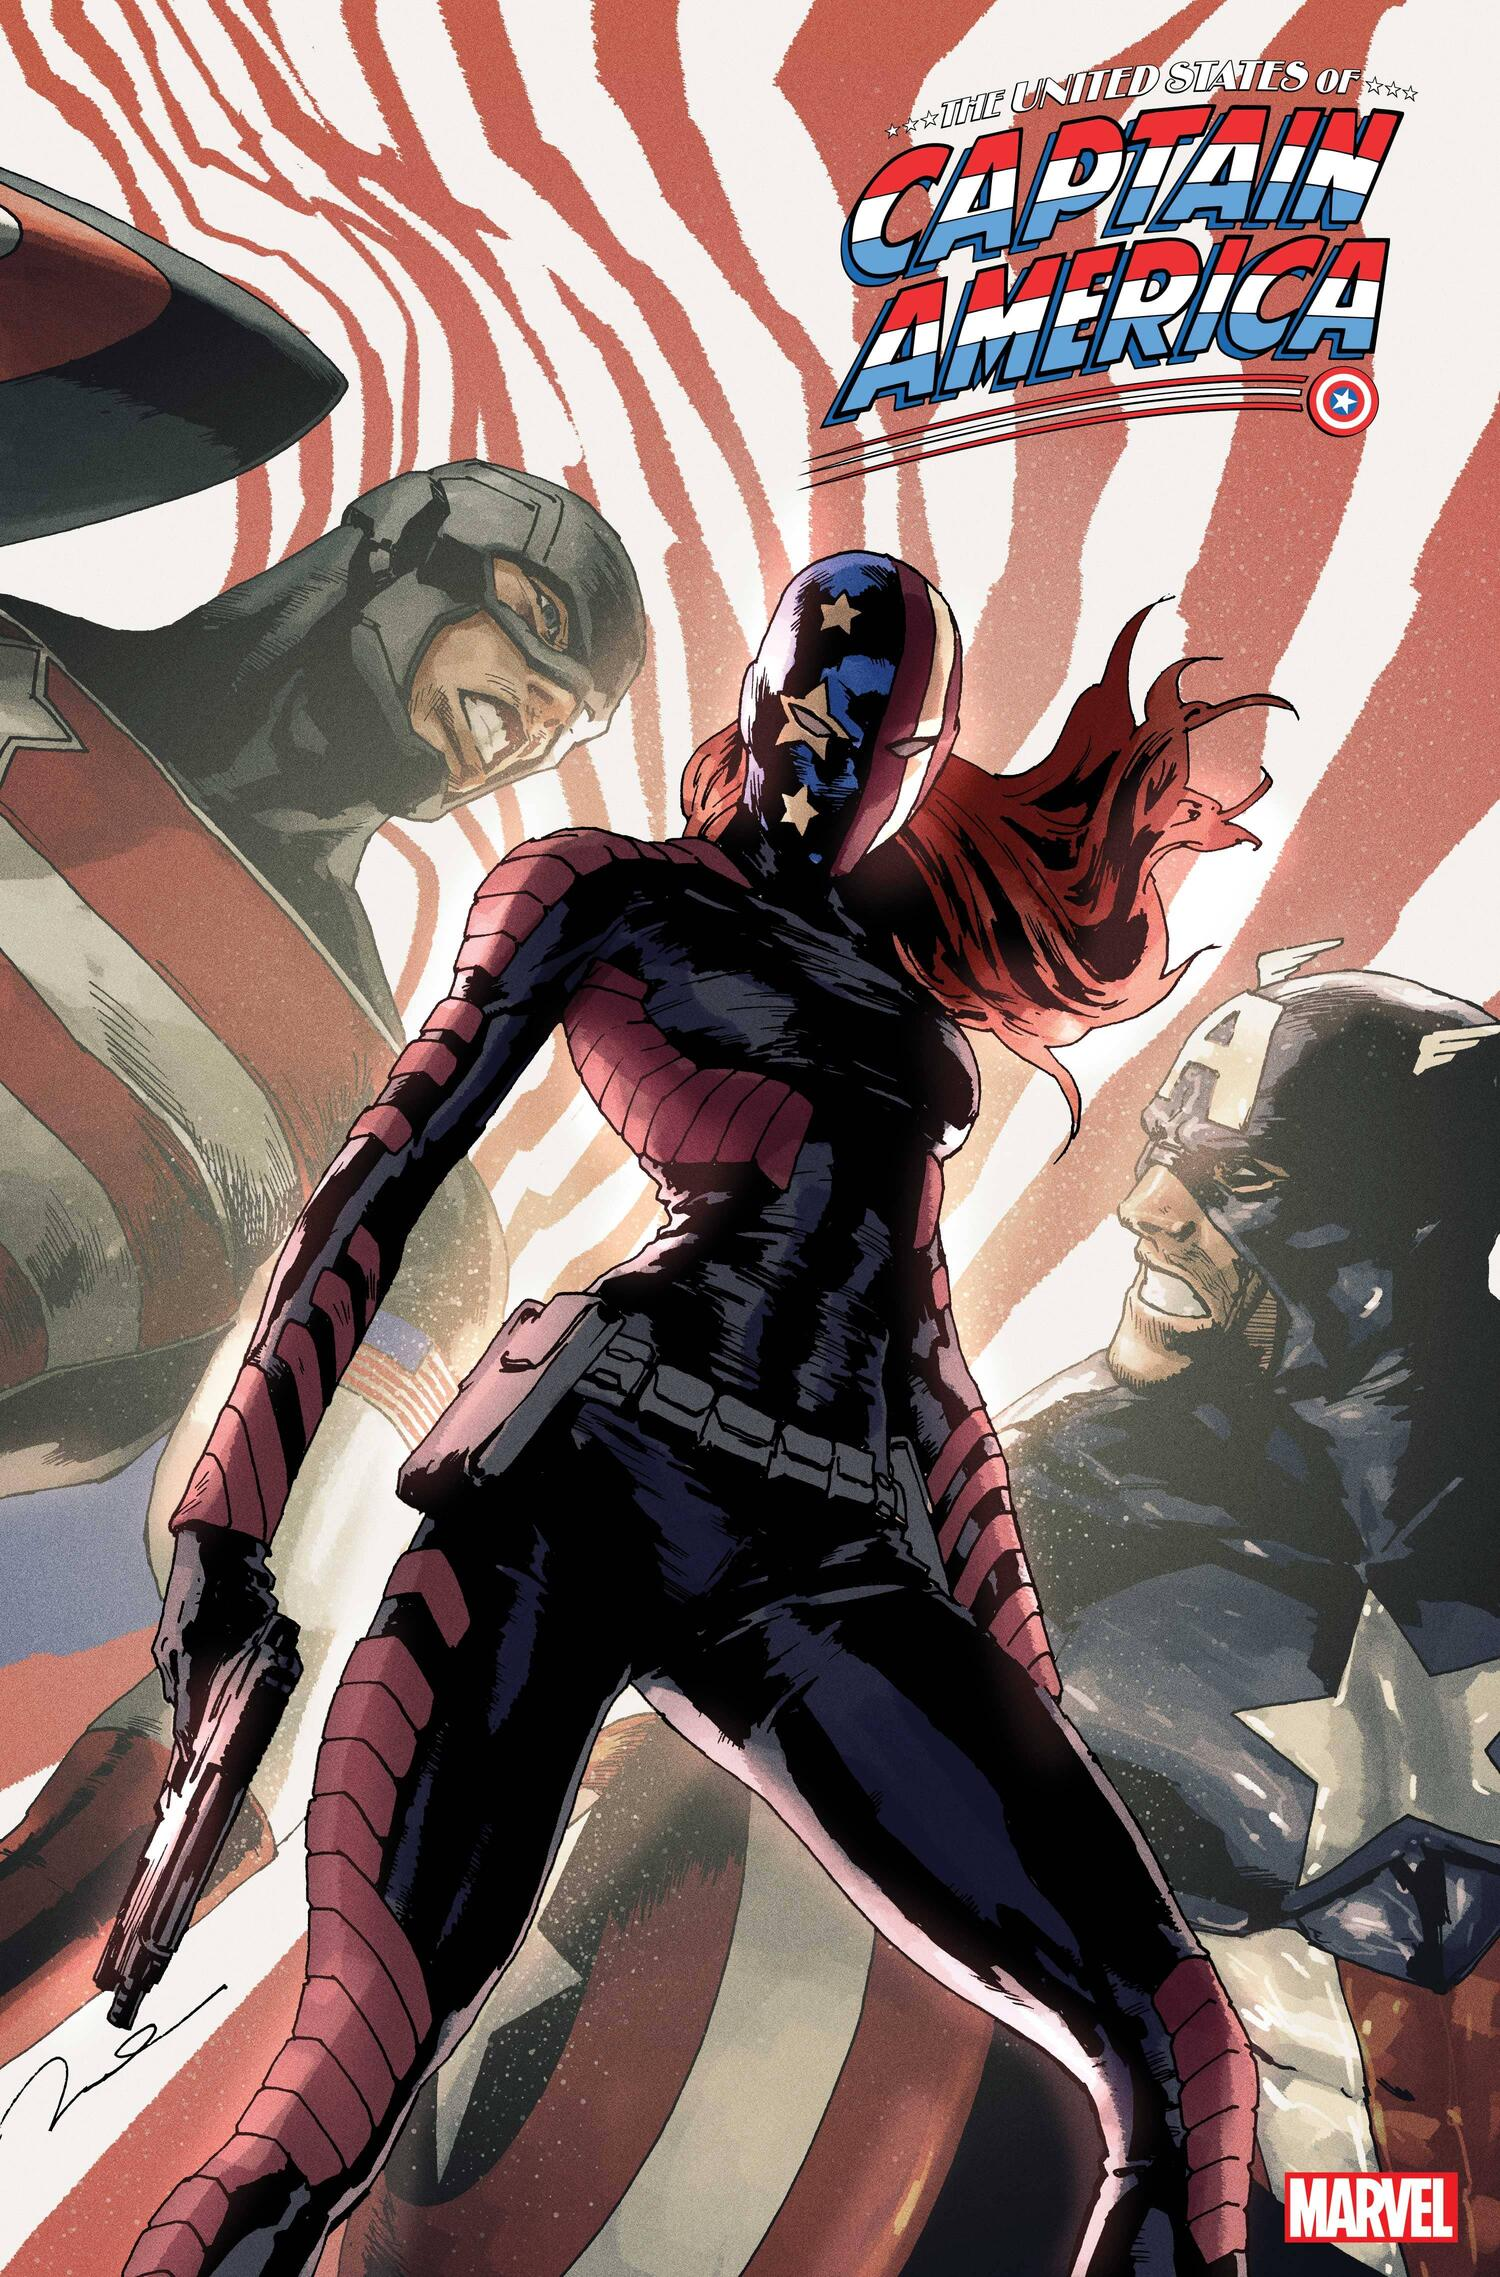 THE UNITED STATES OF CAPTAIN AMERICA#4 cover by GERALD PAREL